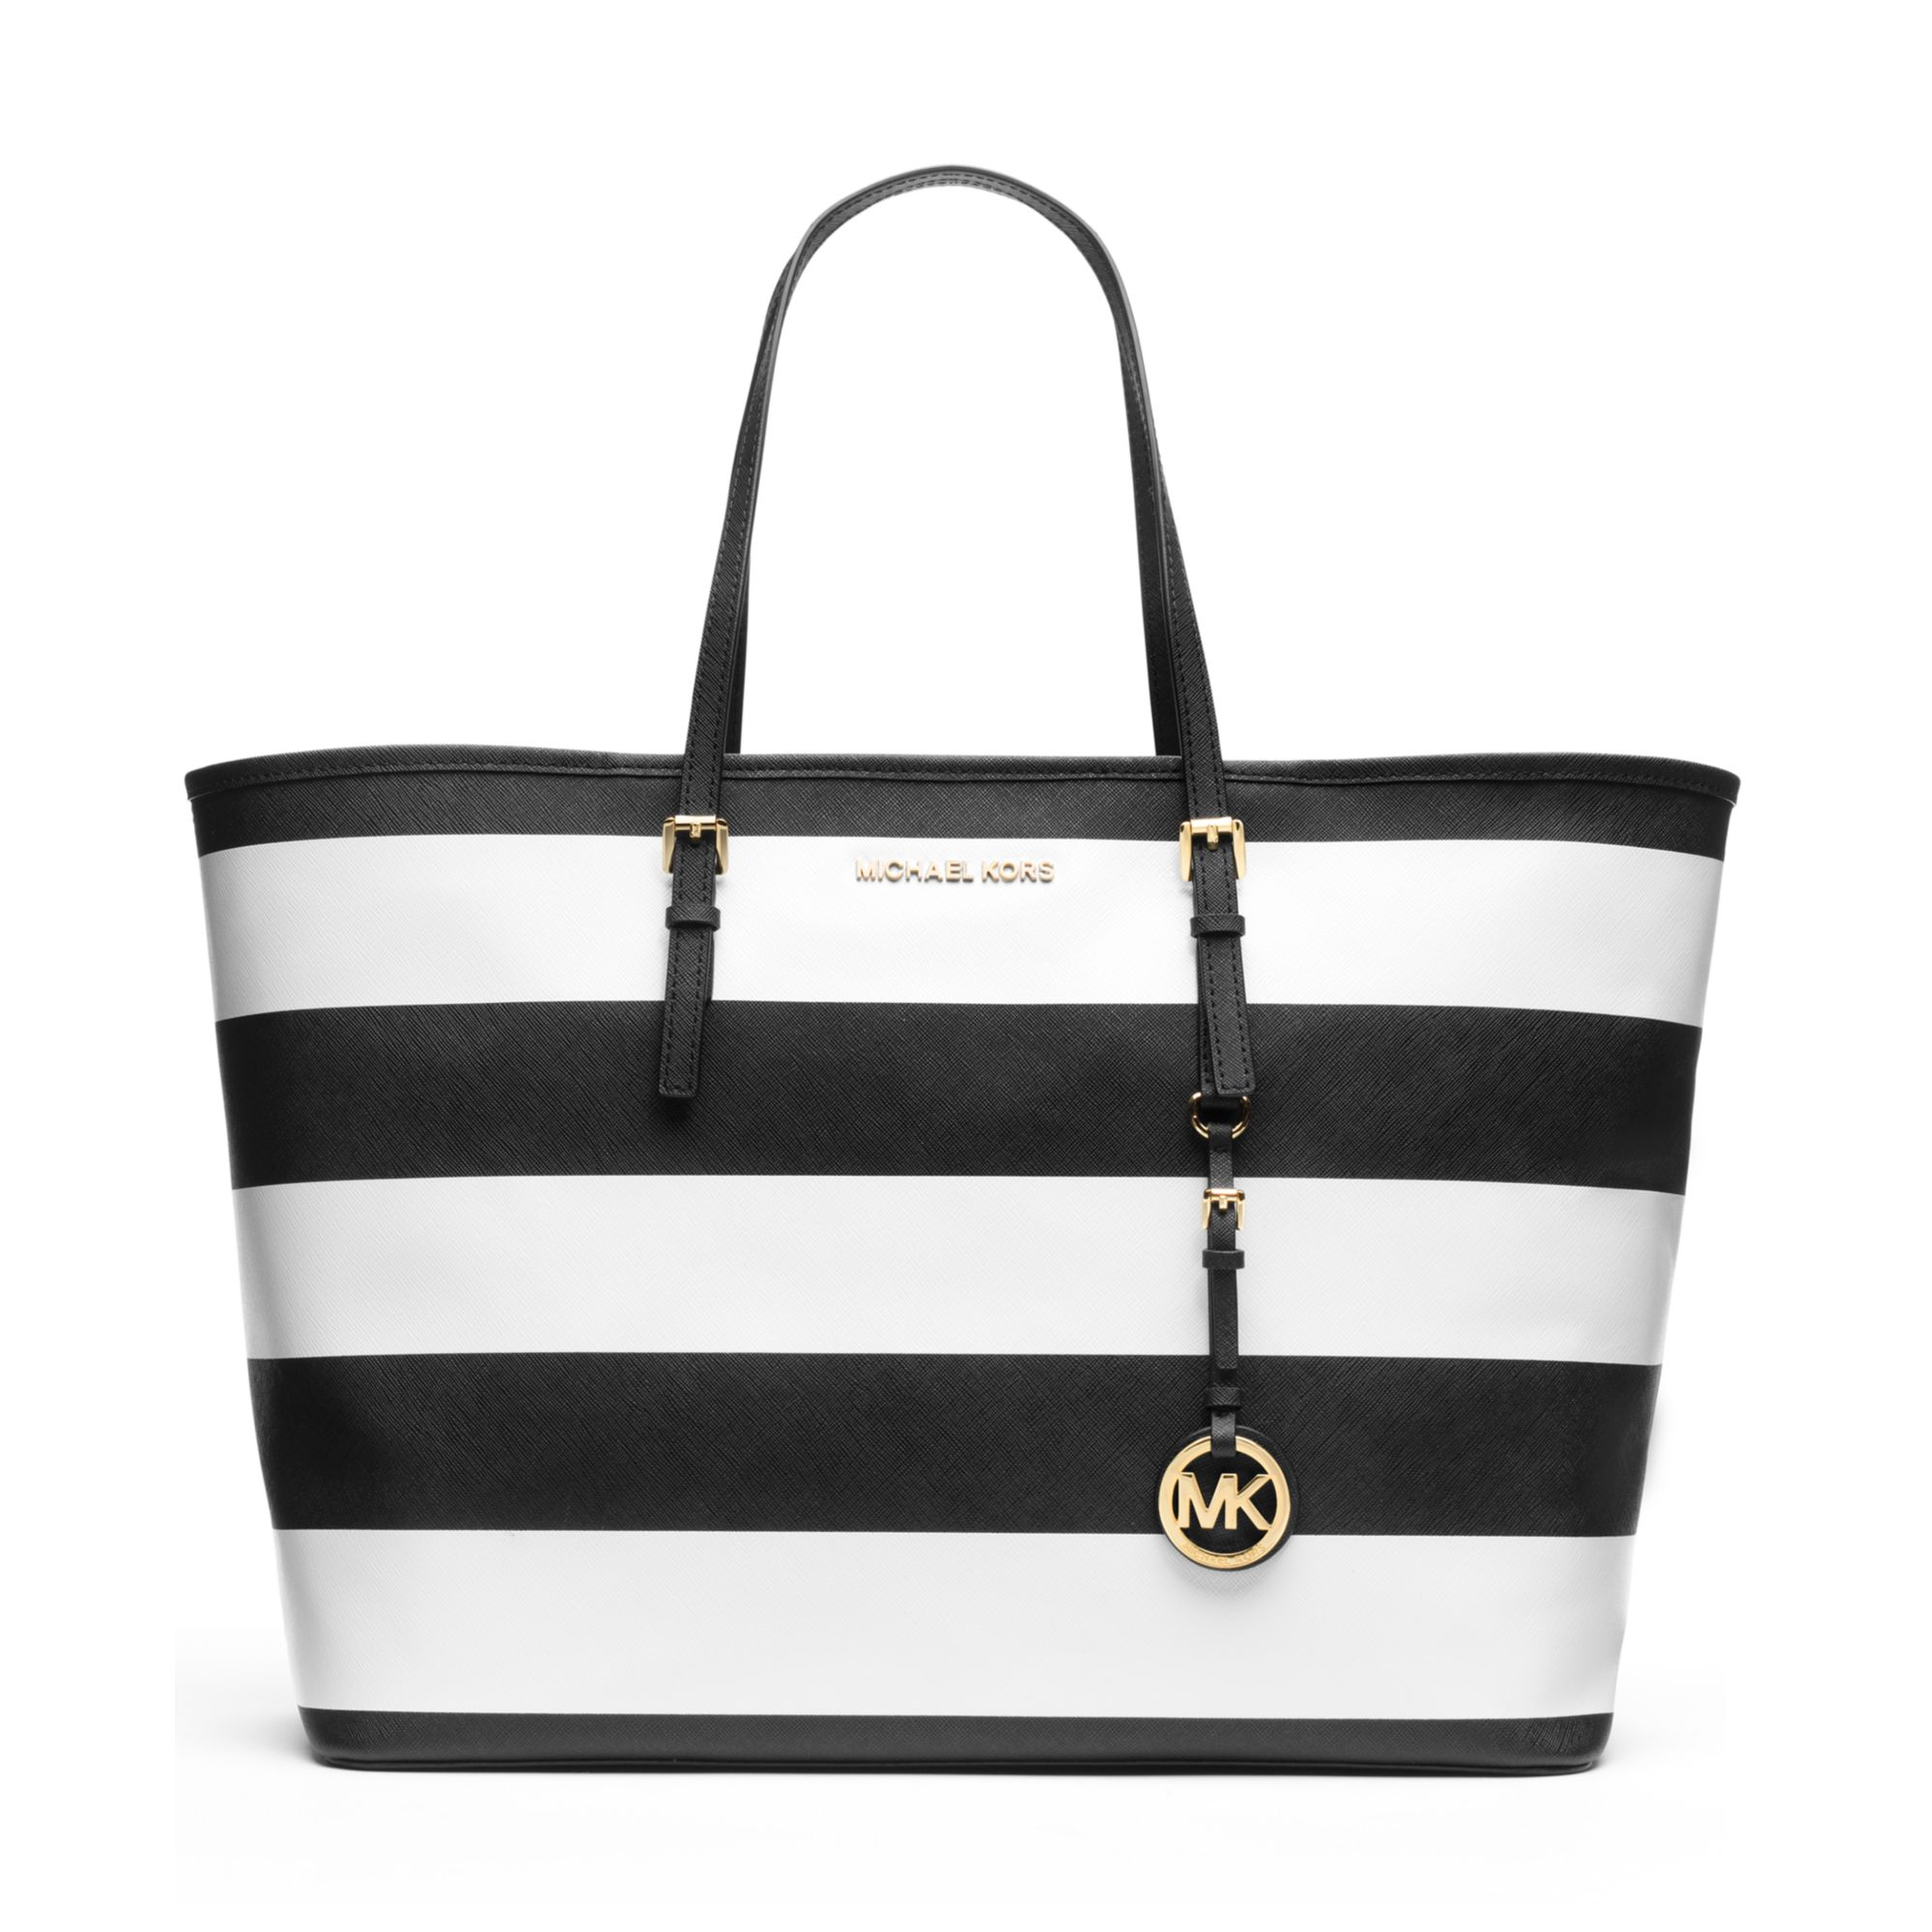 589365f2d23d ... italy lyst michael kors michael jet set medium stripe travel tote in  black 18c17 61bed